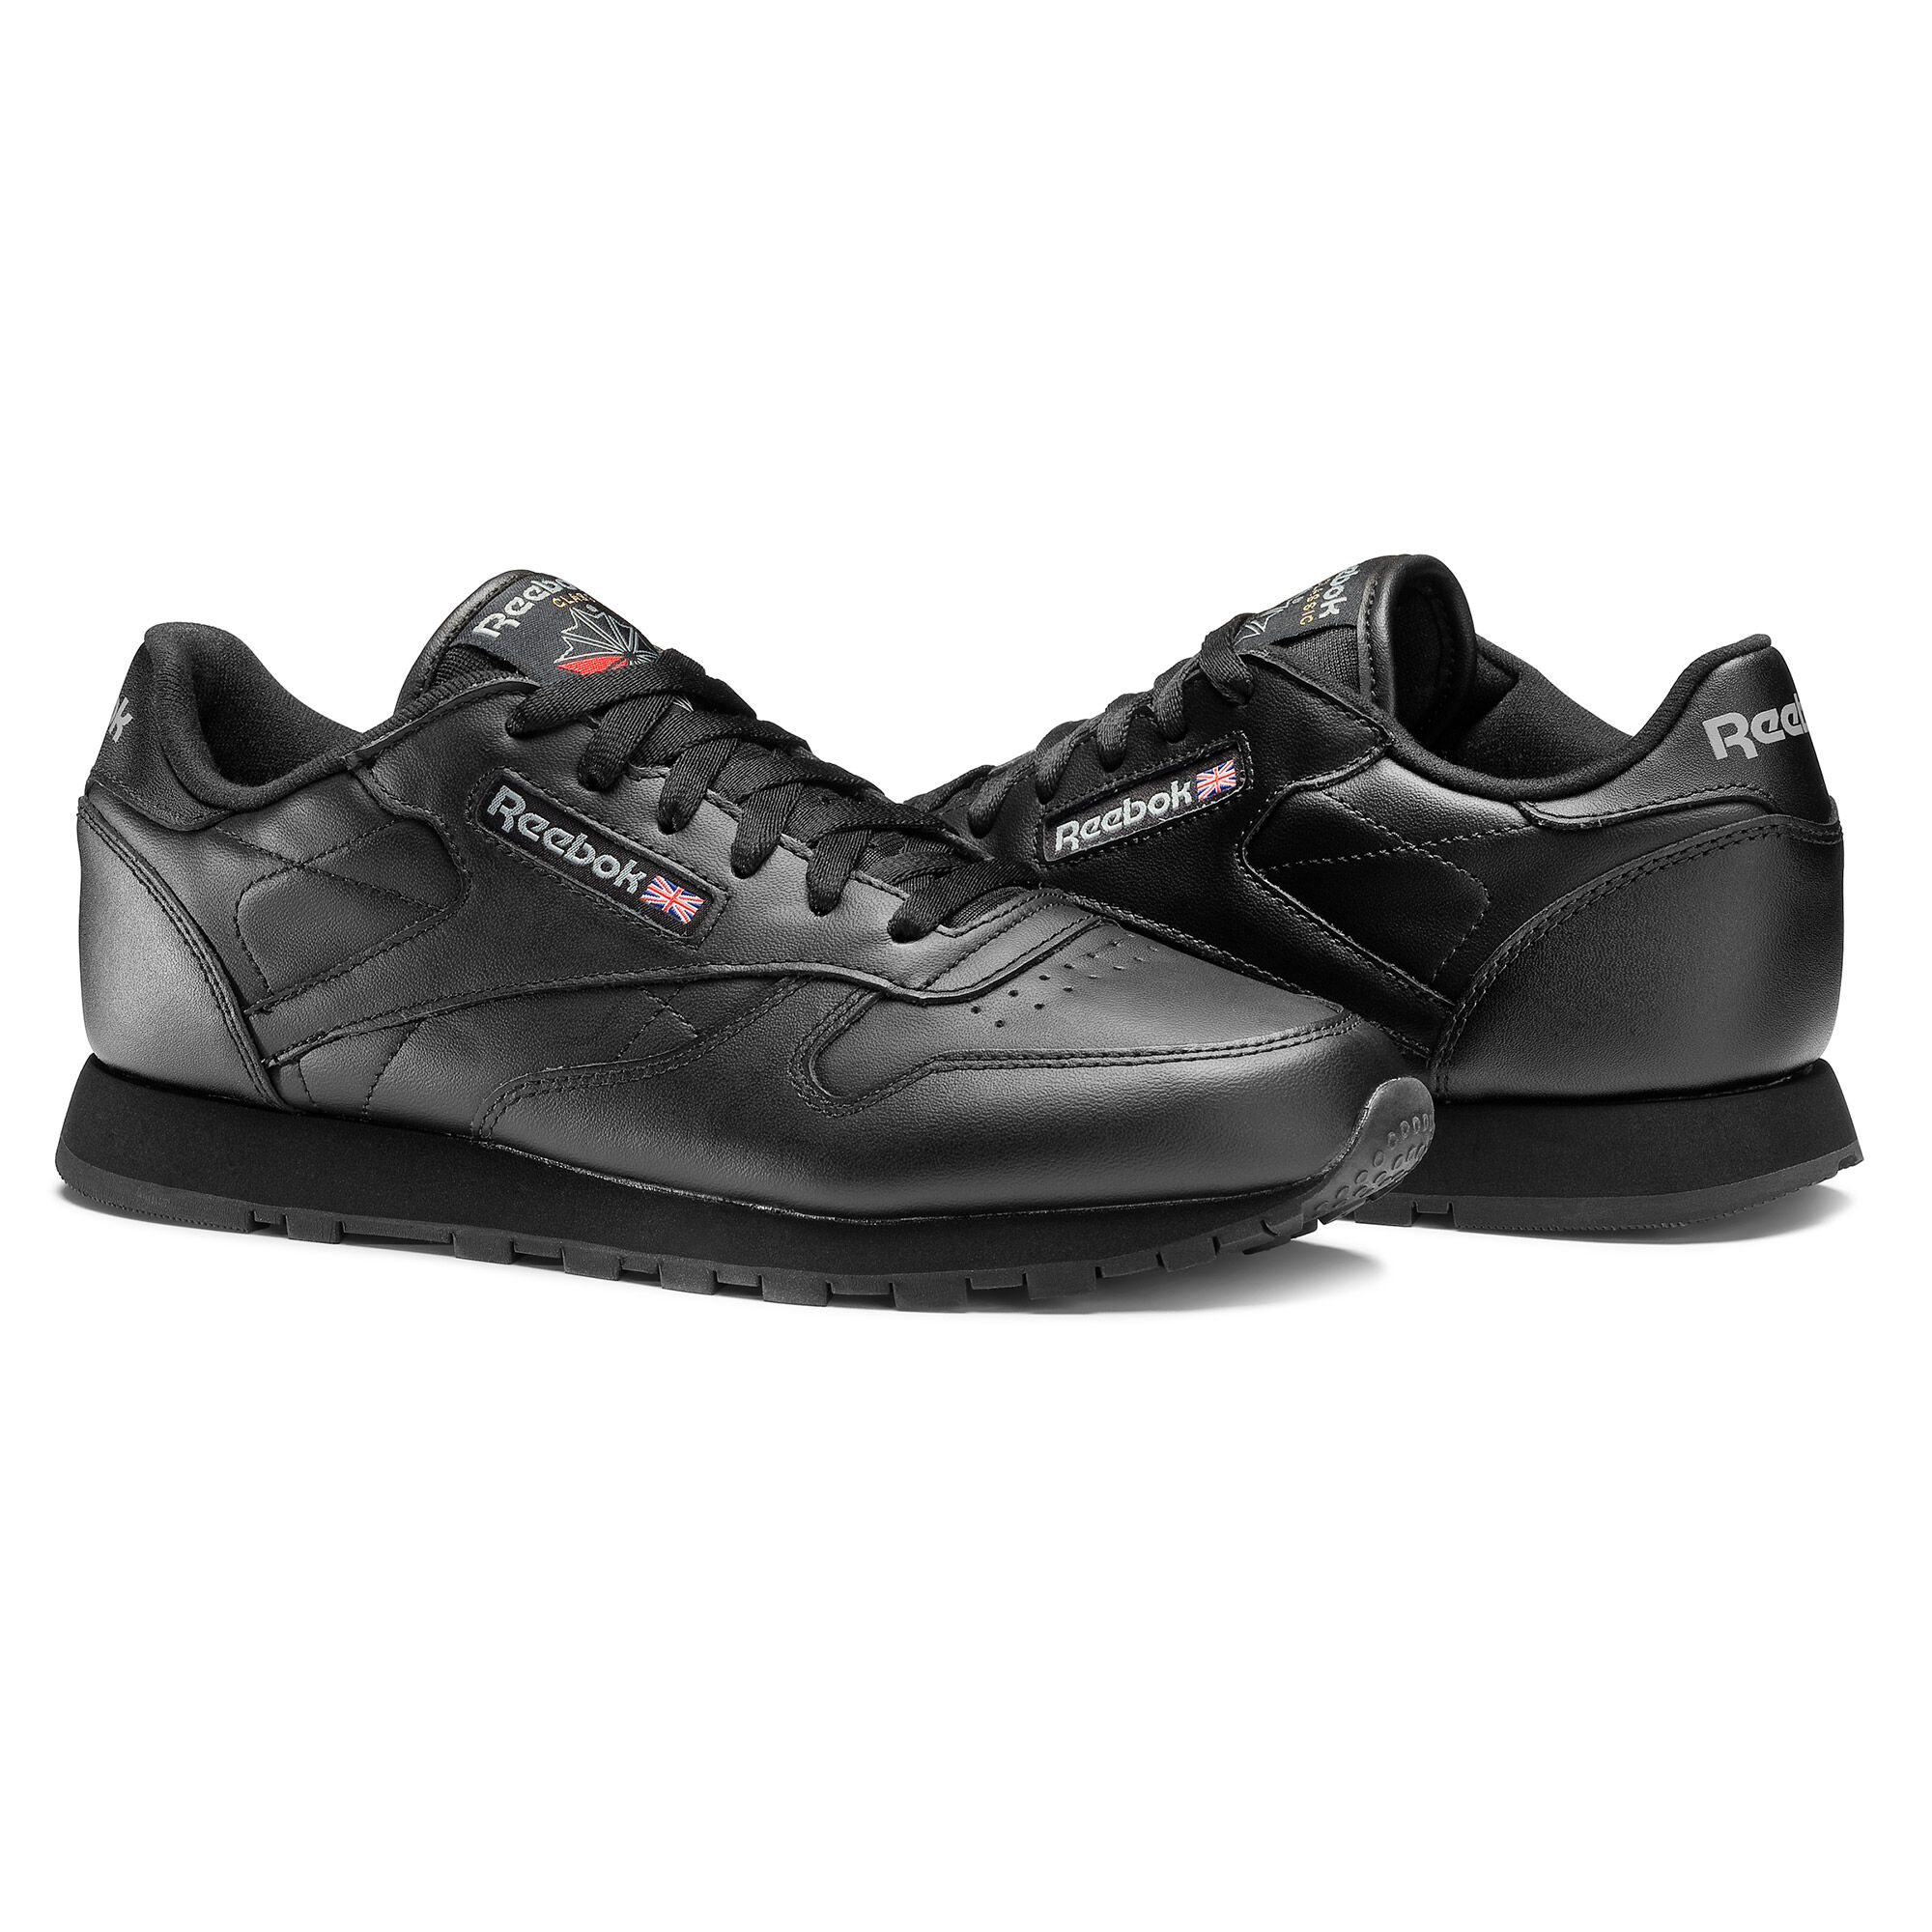 Men's Shoes | Running, Training & Casual Footwear | Reebok US